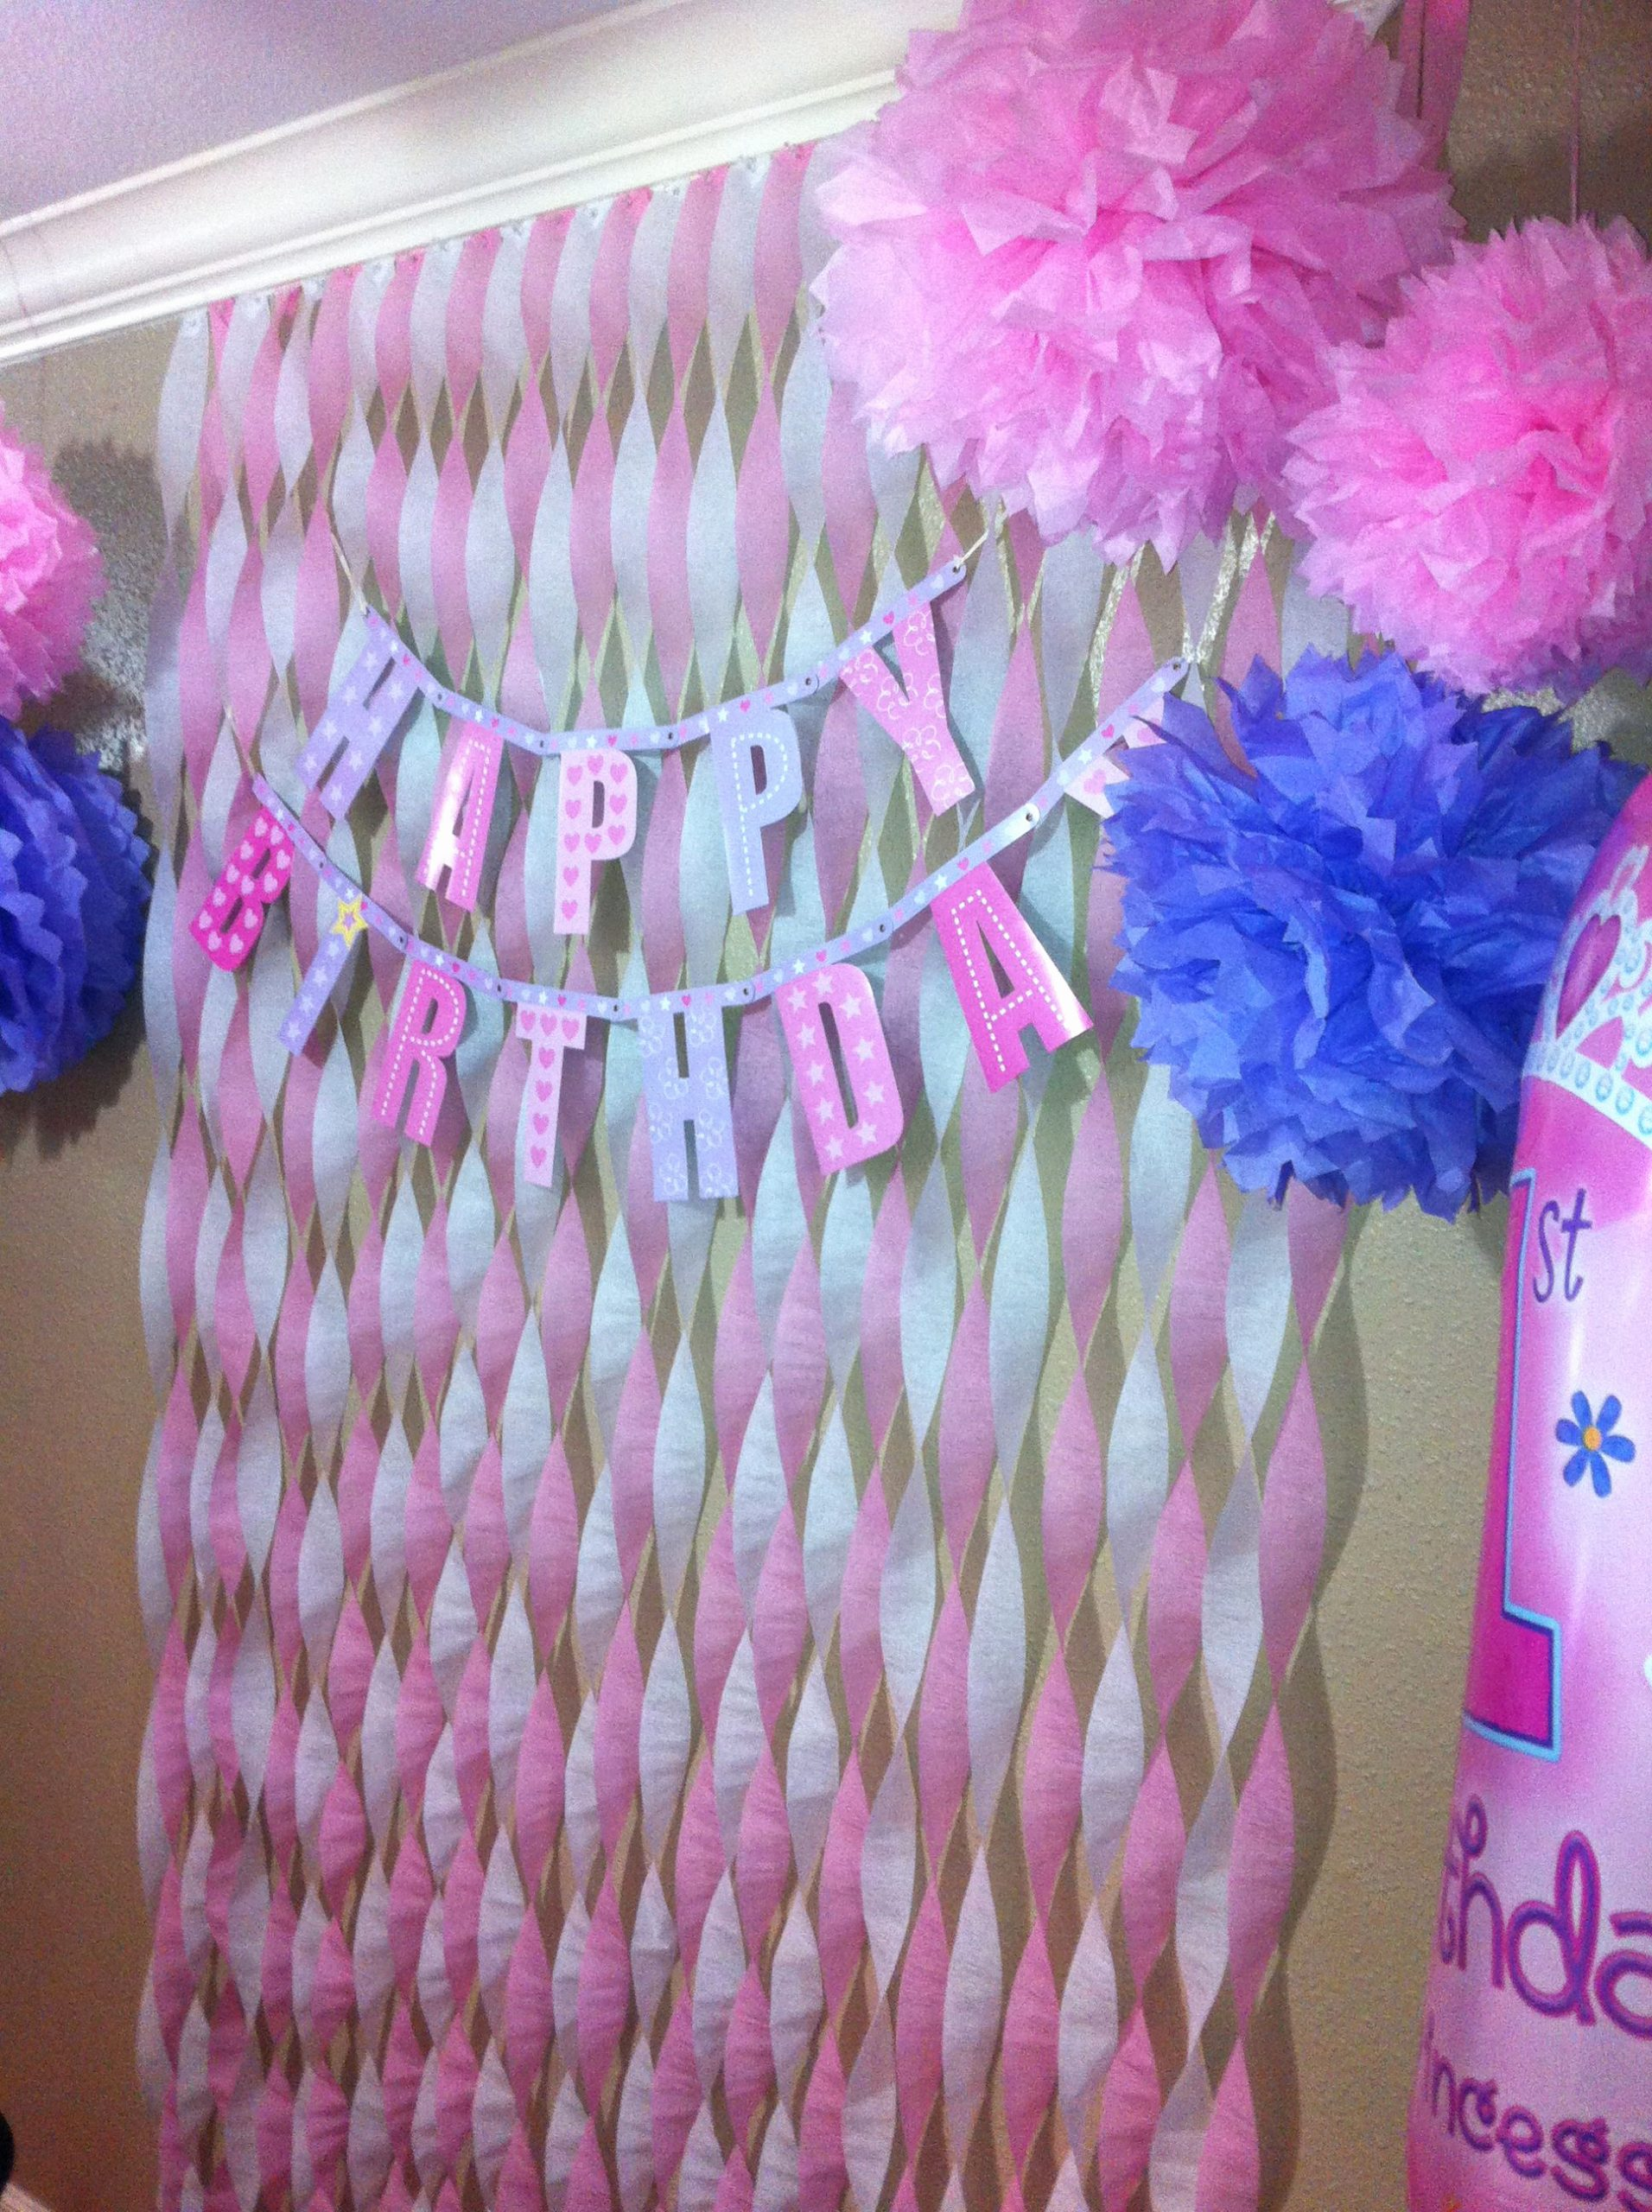 Low Cost Birthday Decoration Ideas Awesome First Birthday Decor On A Bud for My sophia Pink and